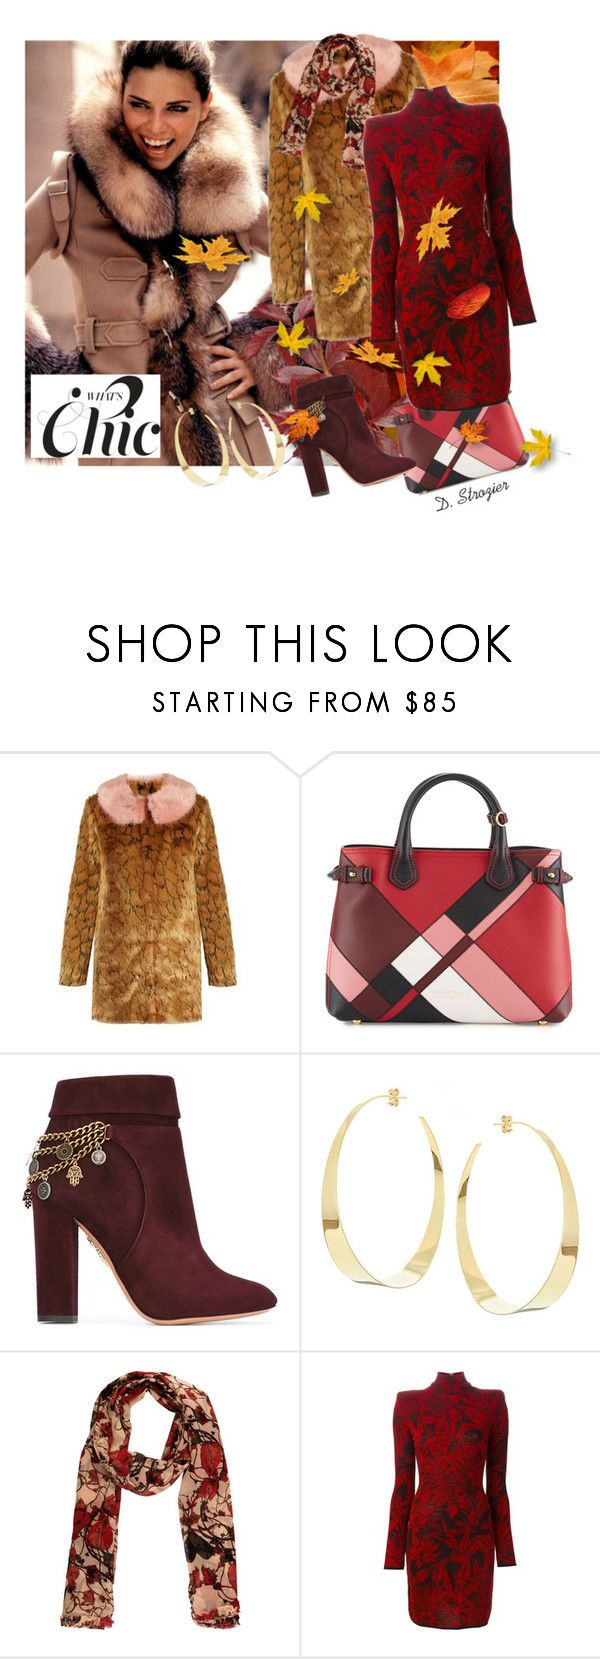 """""""Modern Chic"""" by deborah-strozier ❤ liked on Polyvore featuring Shrimps, Burberry, Aquazzura, Lana, Thomas Wylde, Balmain and modern"""